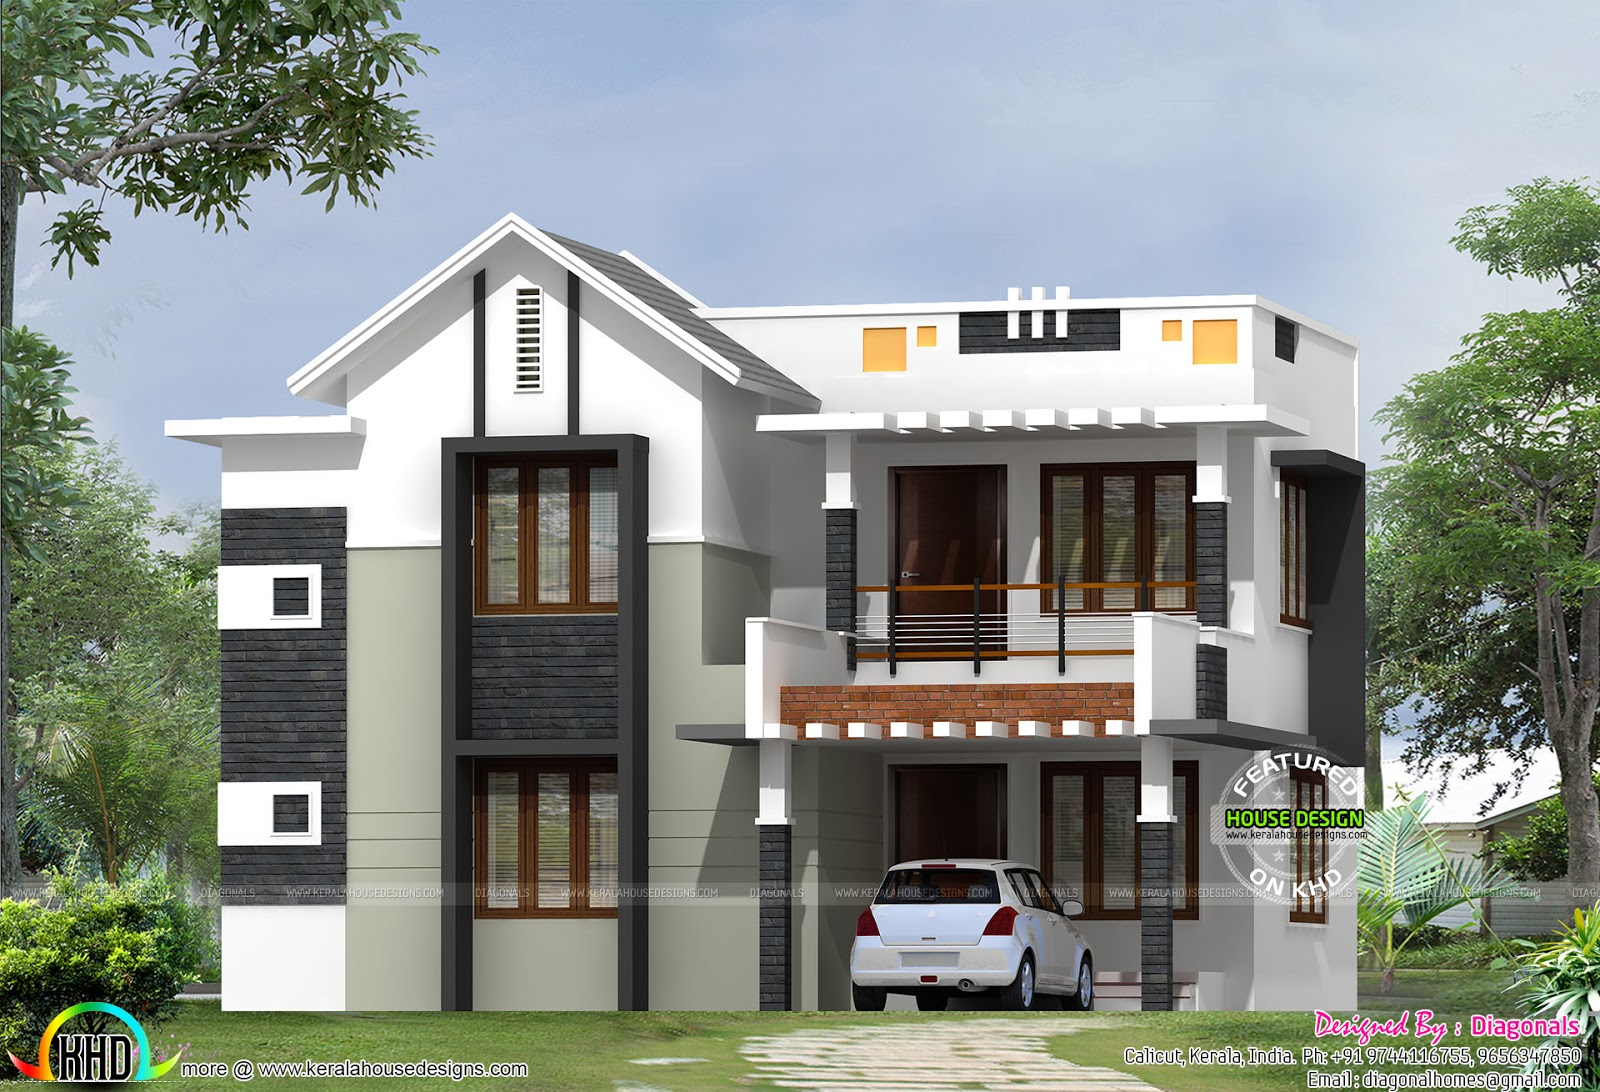 2011 sq ft simple home design kerala home design and for Simple kerala home designs